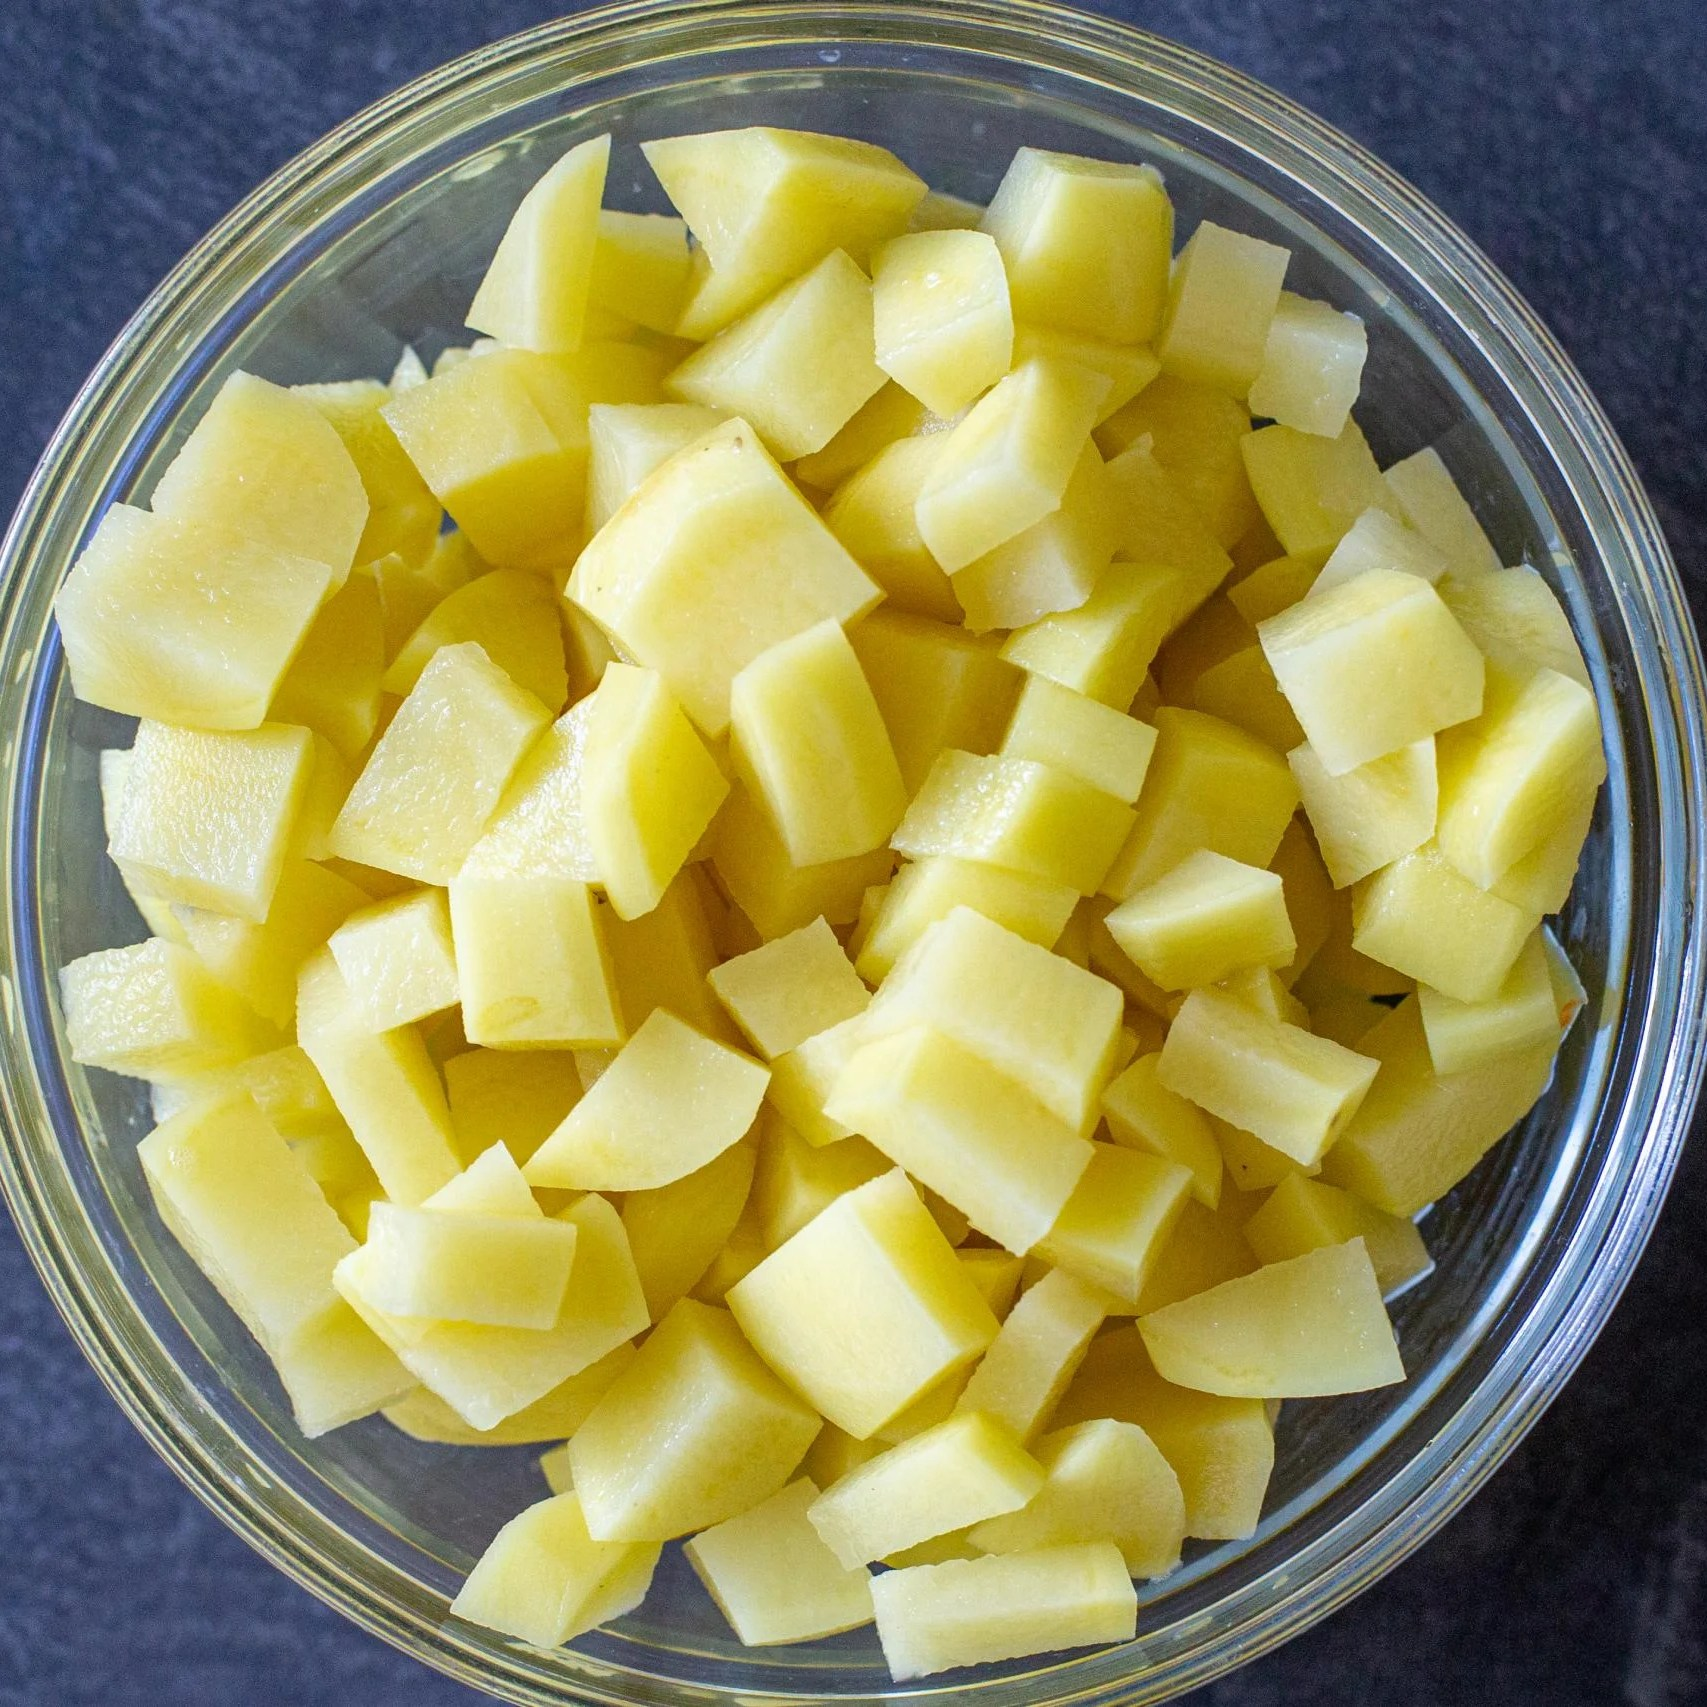 cut up potatoes in a bowl